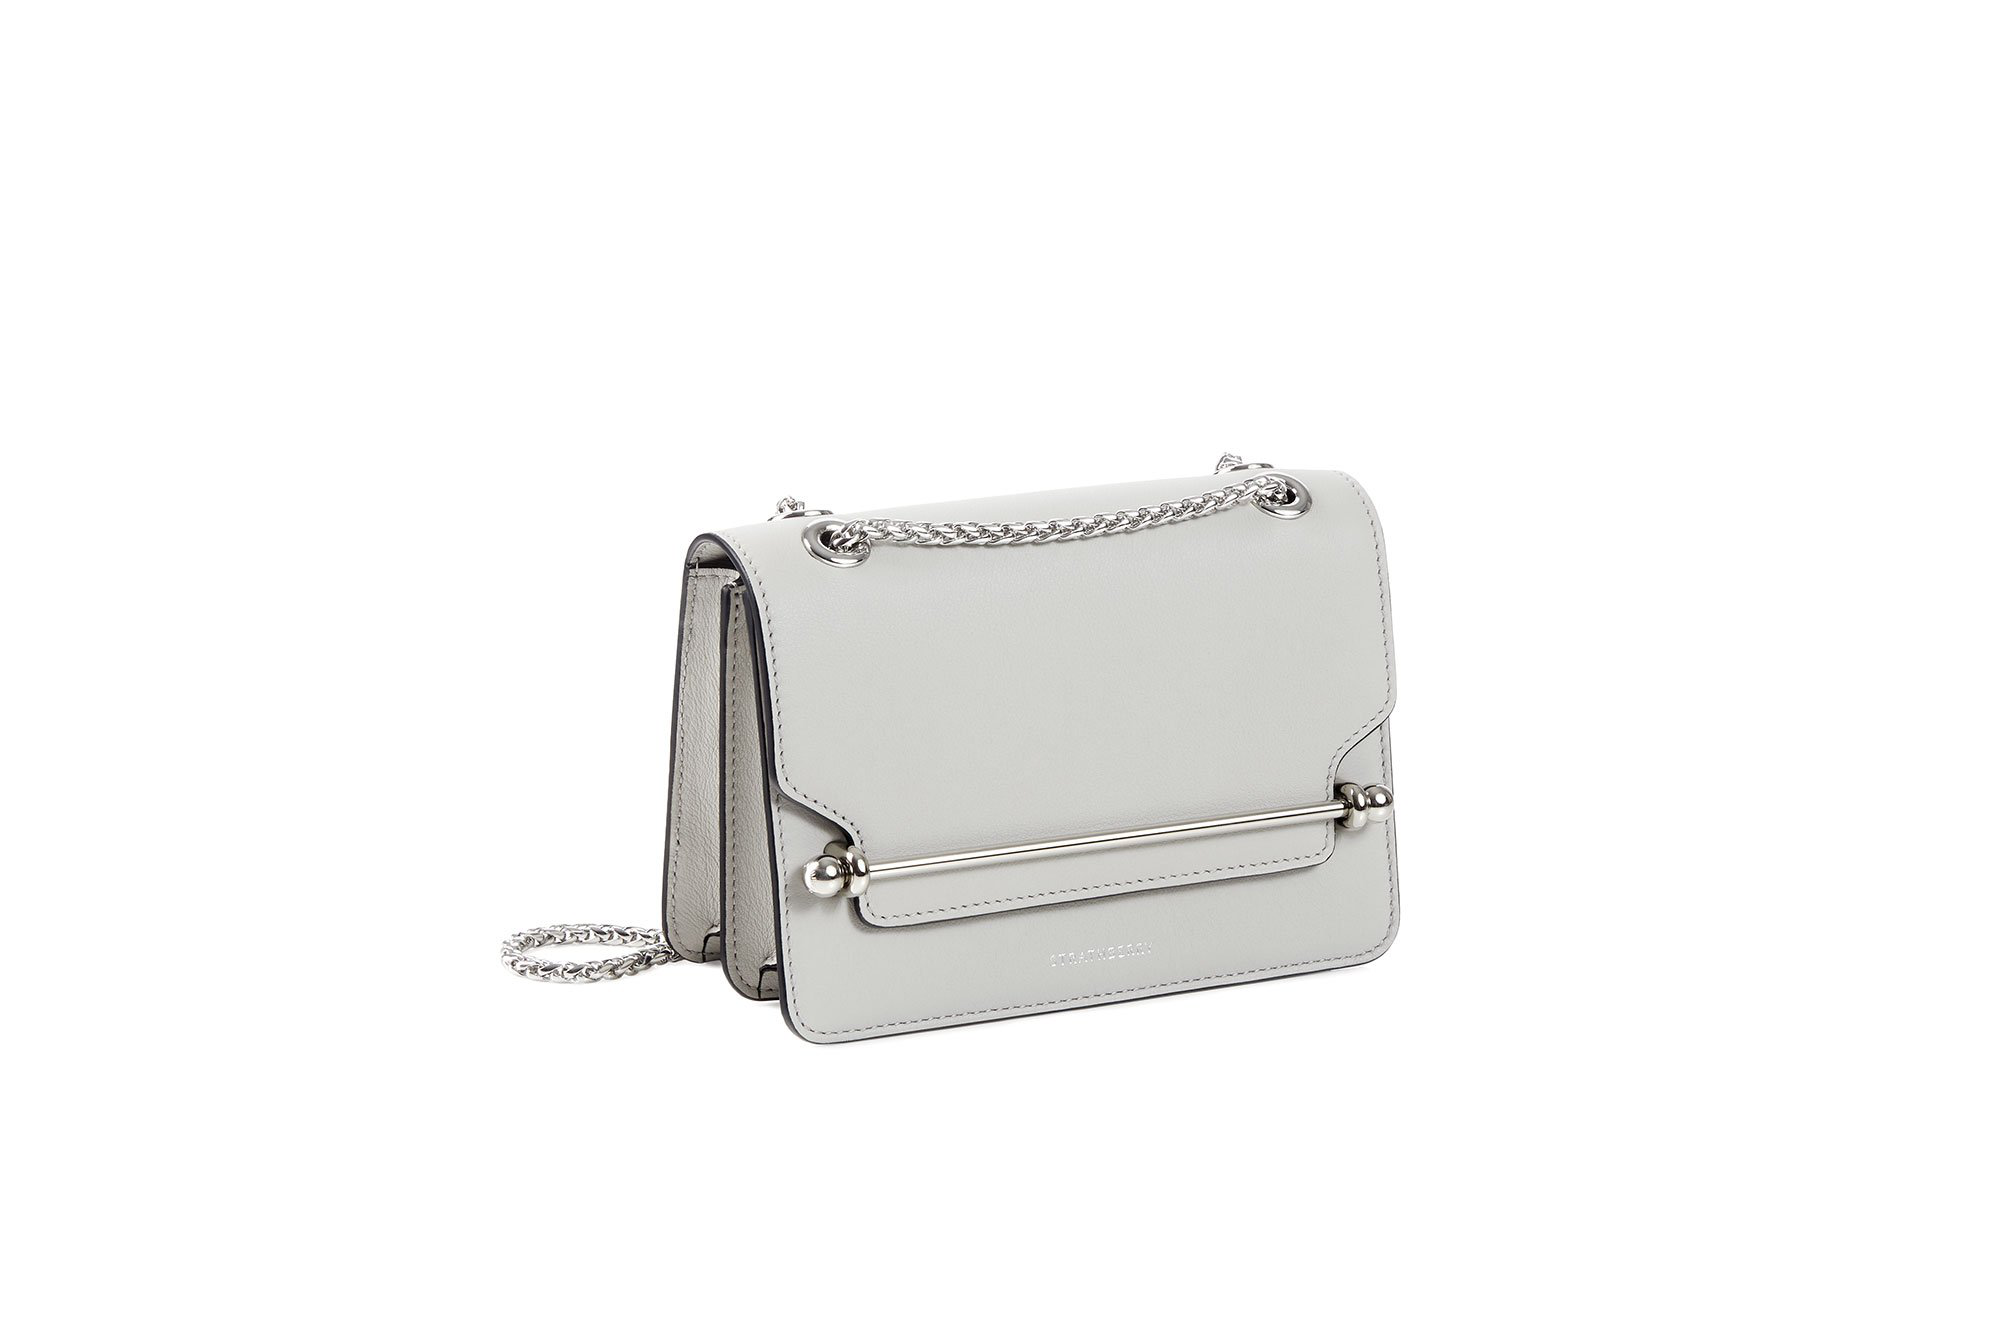 Strathberry East/West Mini - Pearl Grey (Silver Hardware)